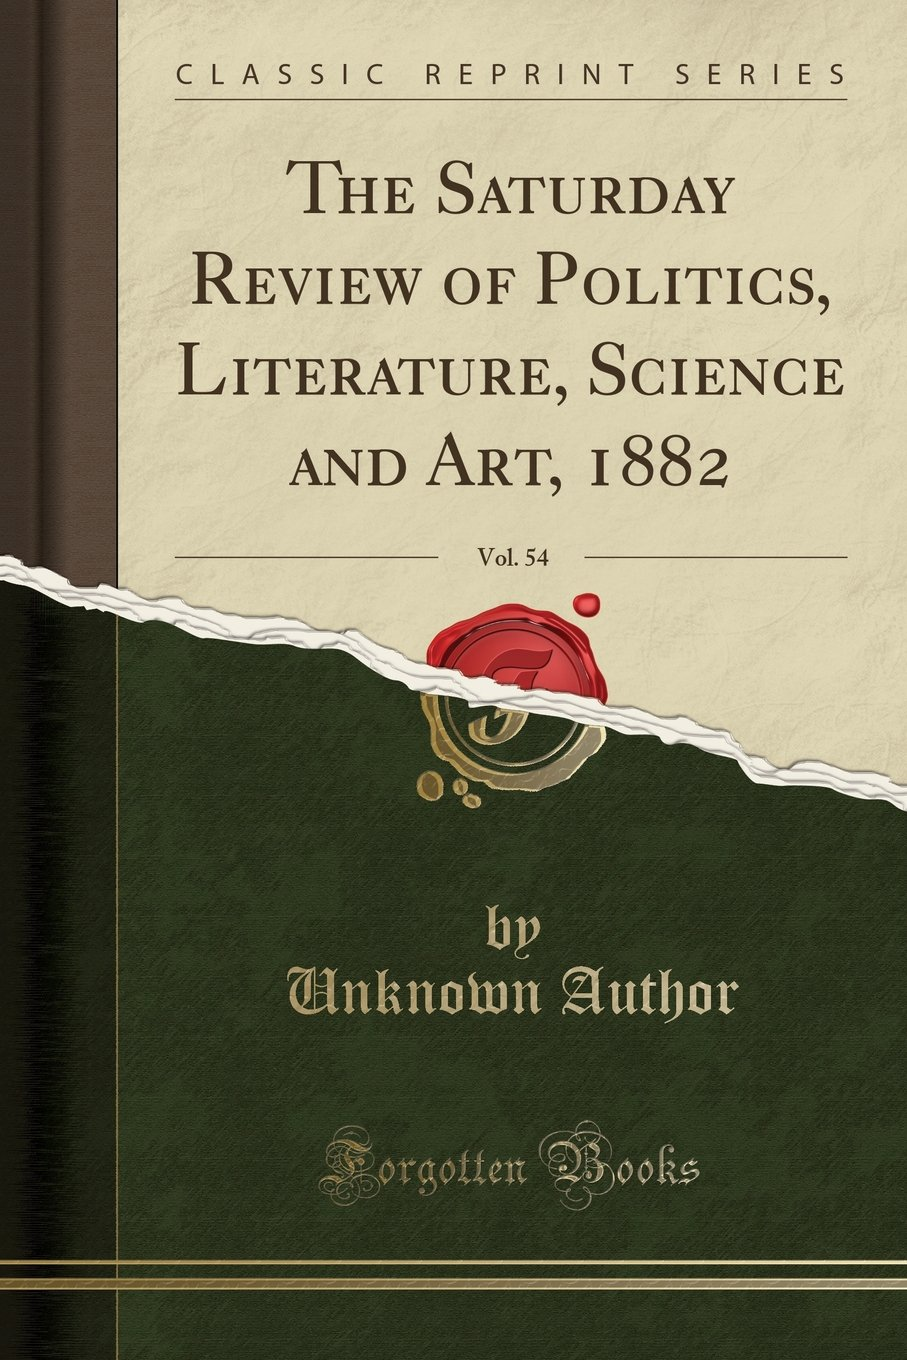 The Saturday Review of Politics, Literature, Science and Art, 1882, Vol. 54 (Classic Reprint) ebook